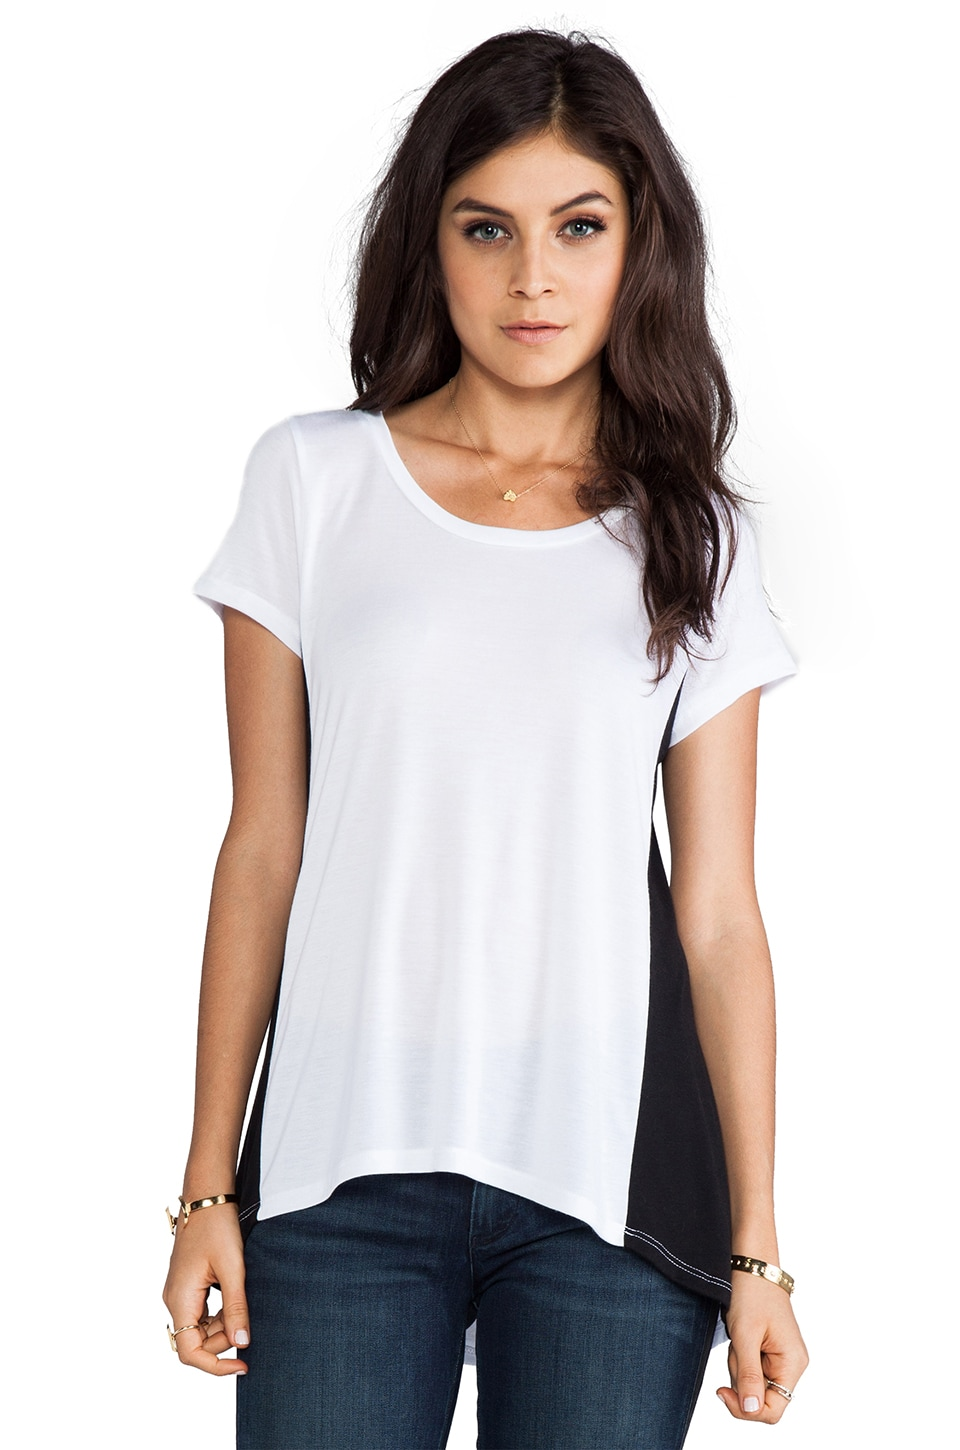 Michael Lauren Justin Short Sleeve Open Back Tee in White/Black